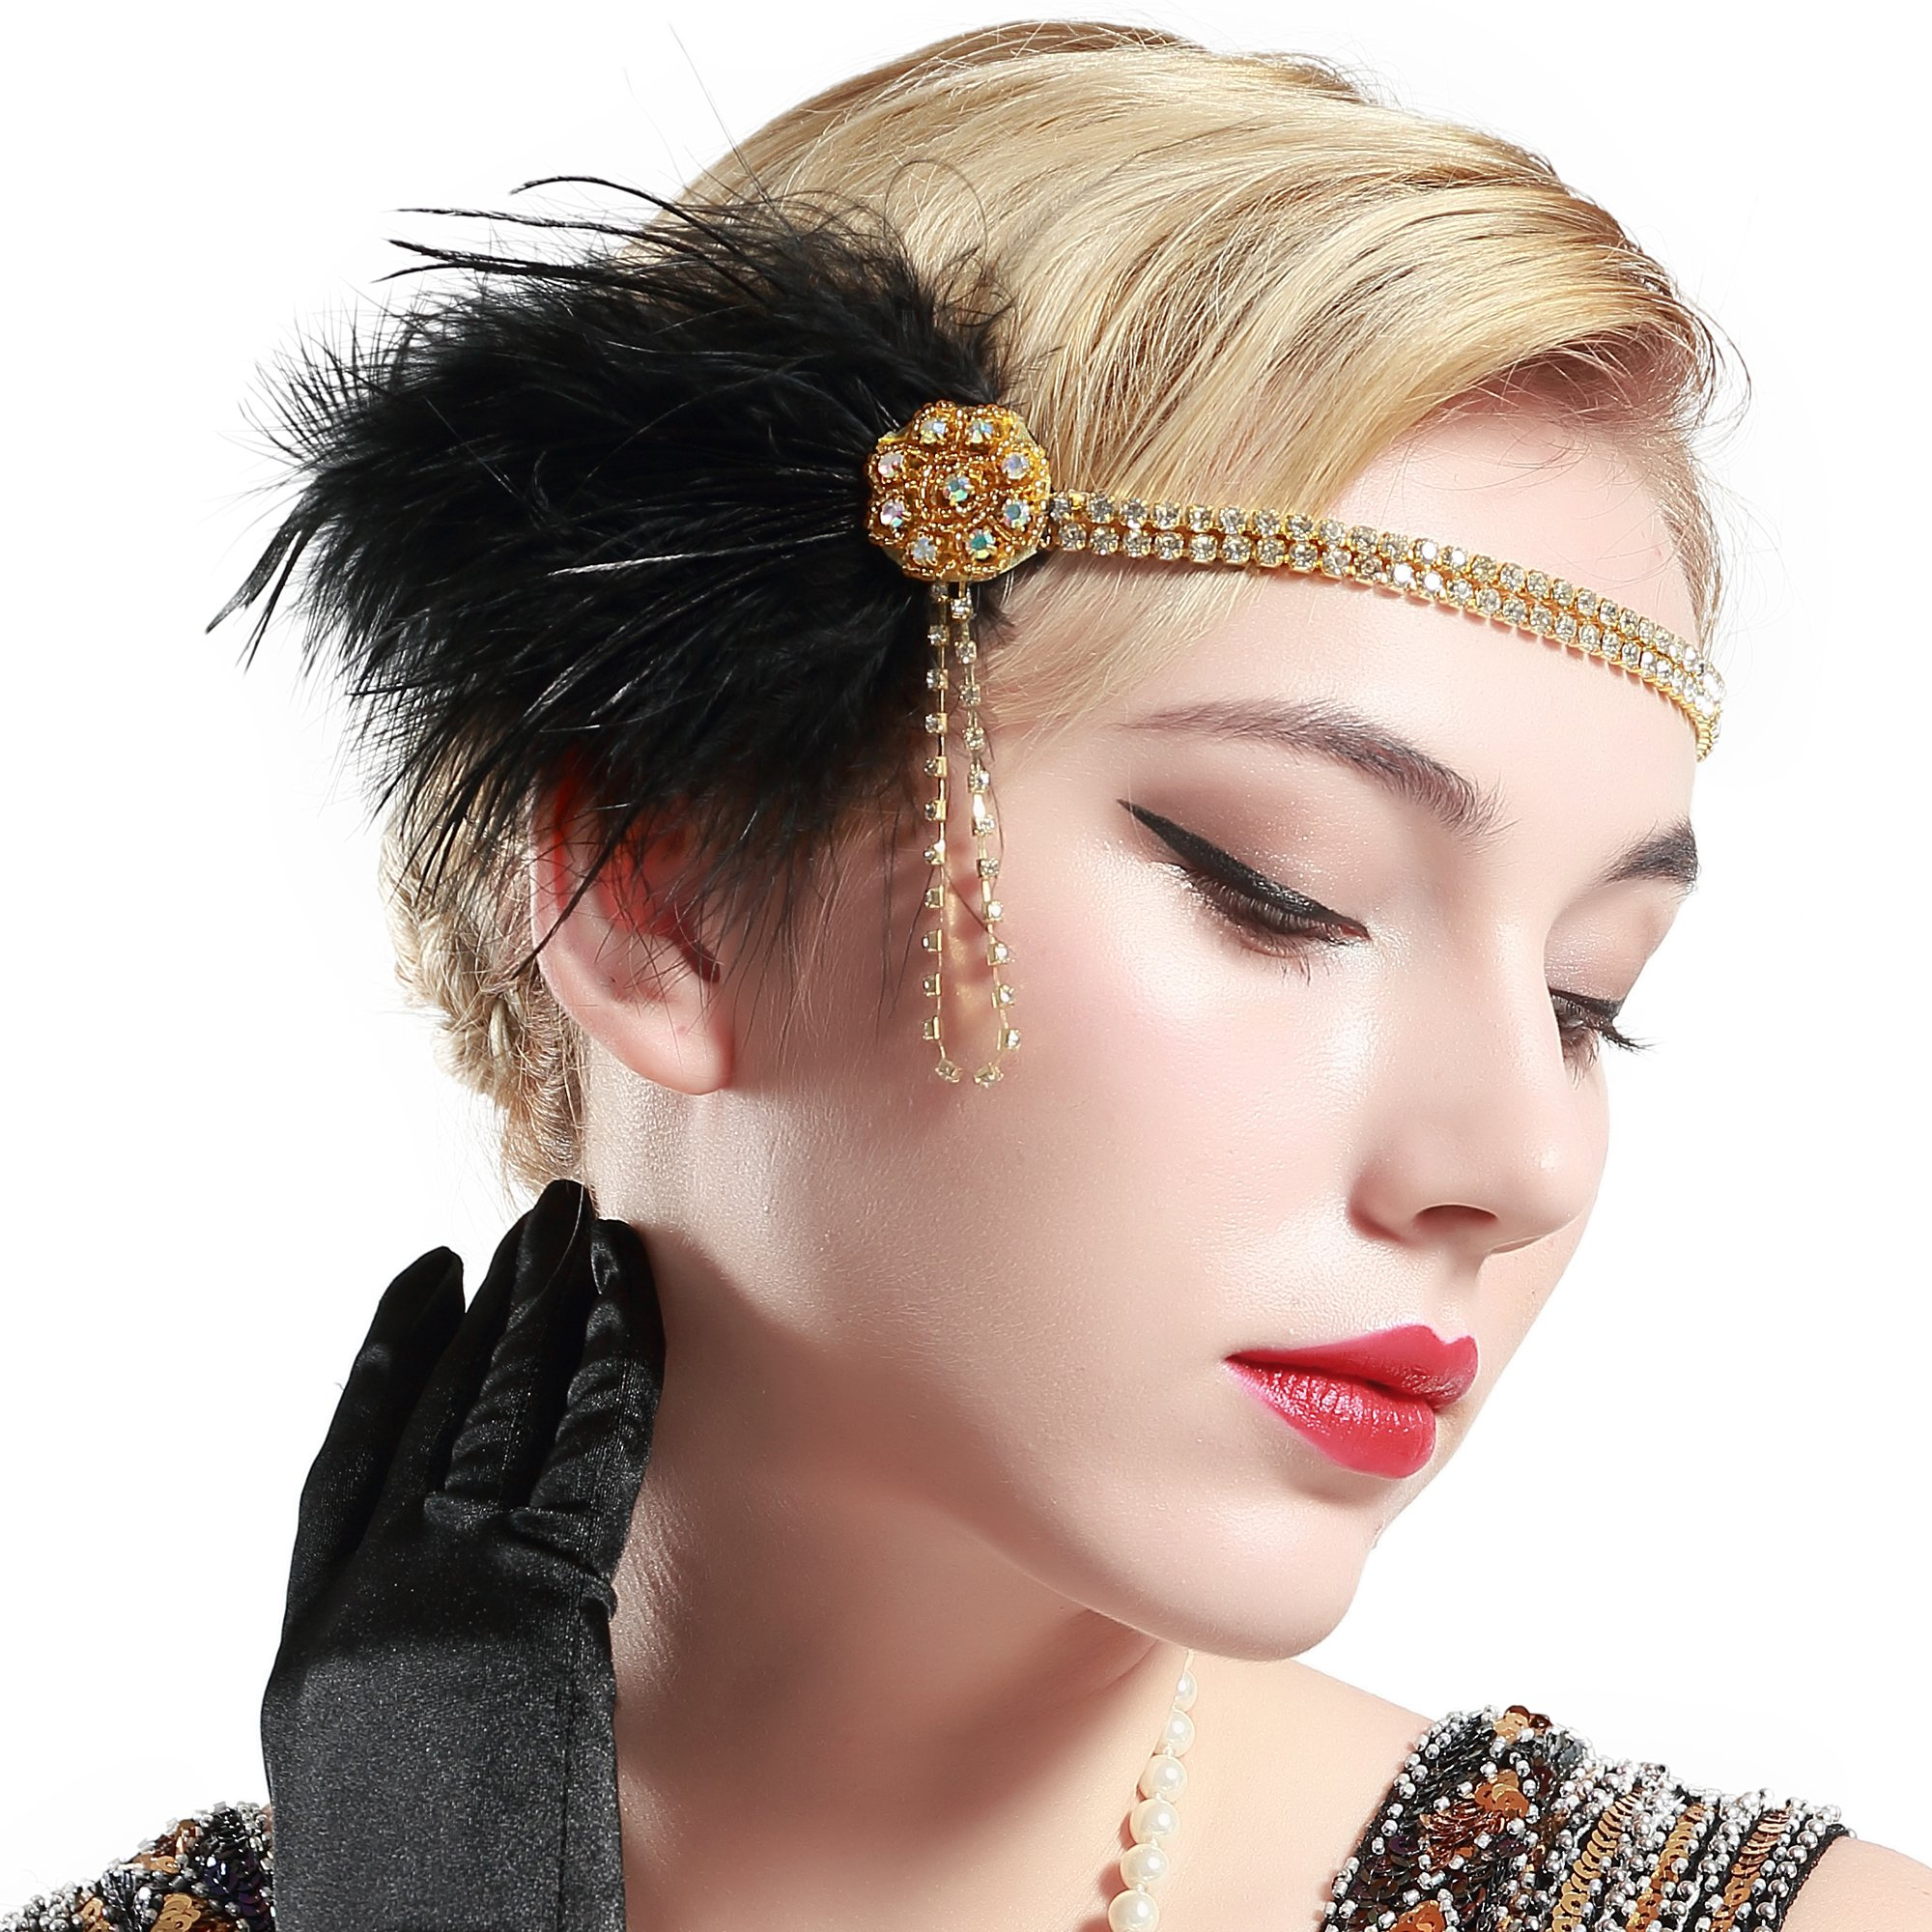 1920s Gatsby Headpiece for Women Black Feather 20s Headband for Gatsby,Vintage 1920s Flapper Hair Accessories for Lady